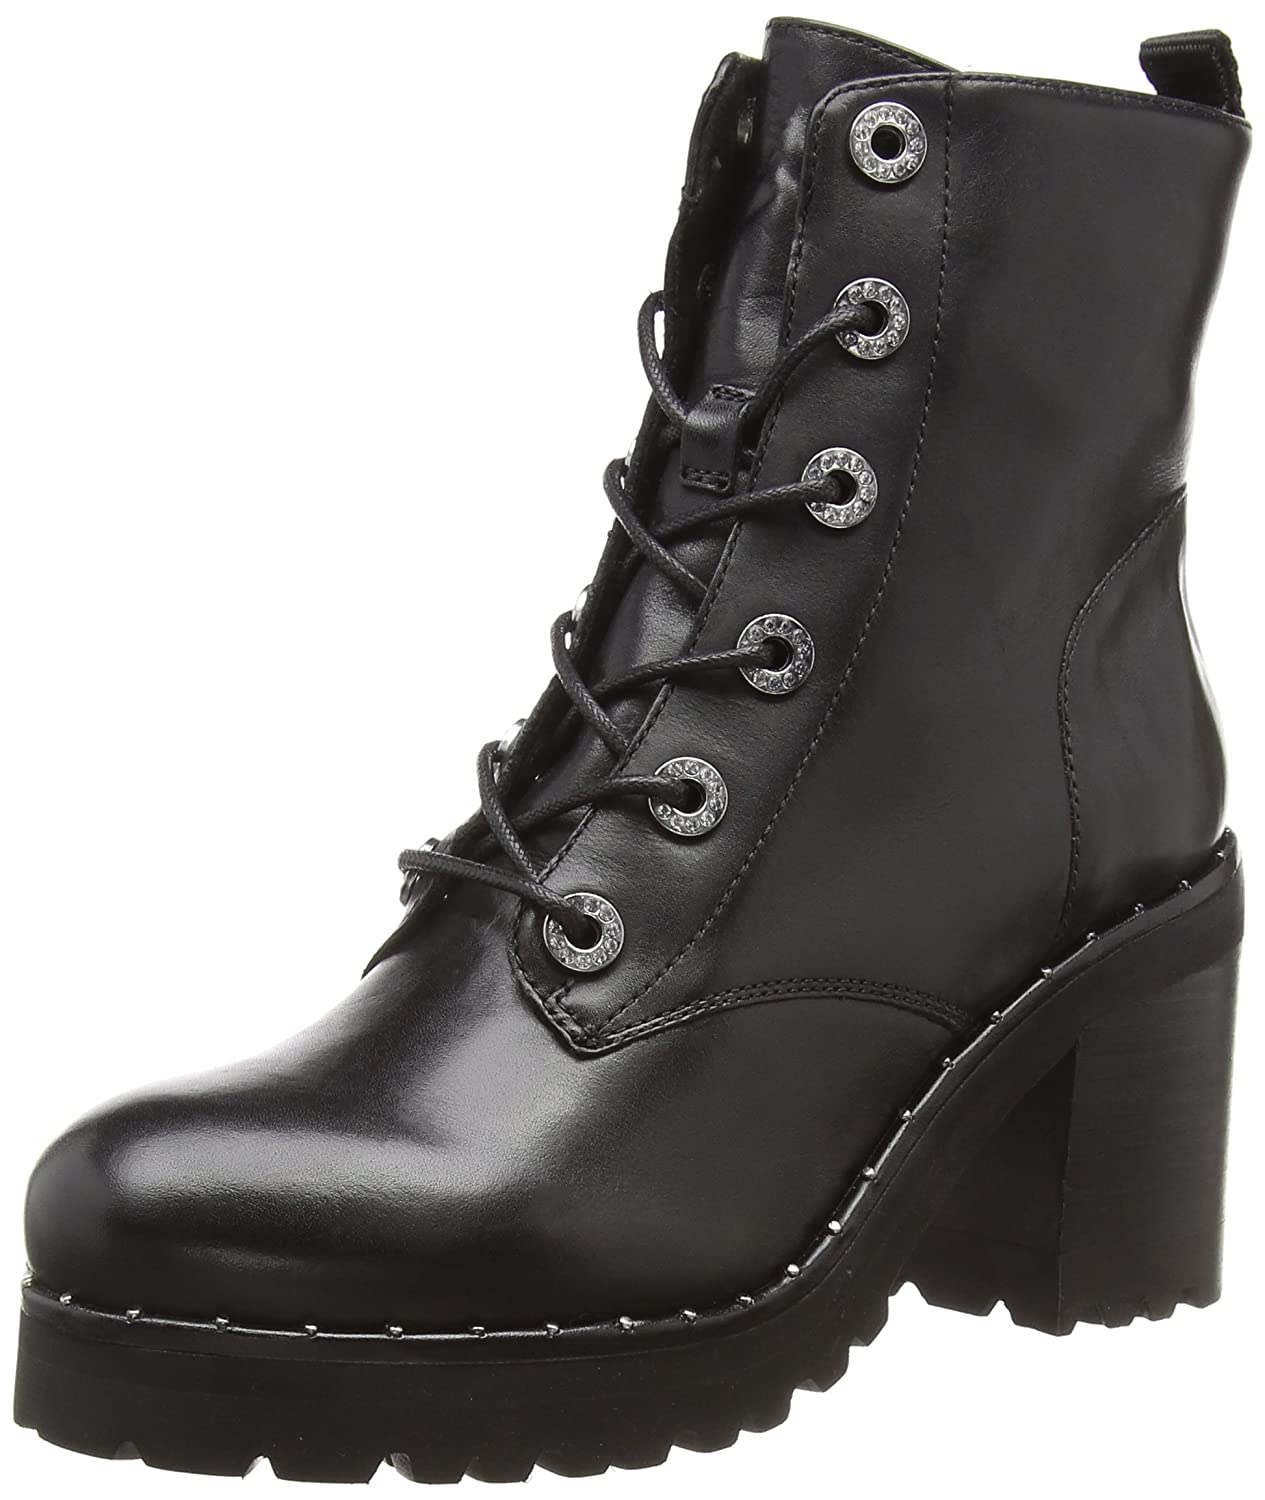 a9bbd52b515 Steve Madden Women's Xina Ankleboot Ankle Boots: Amazon.co.uk: Shoes ...